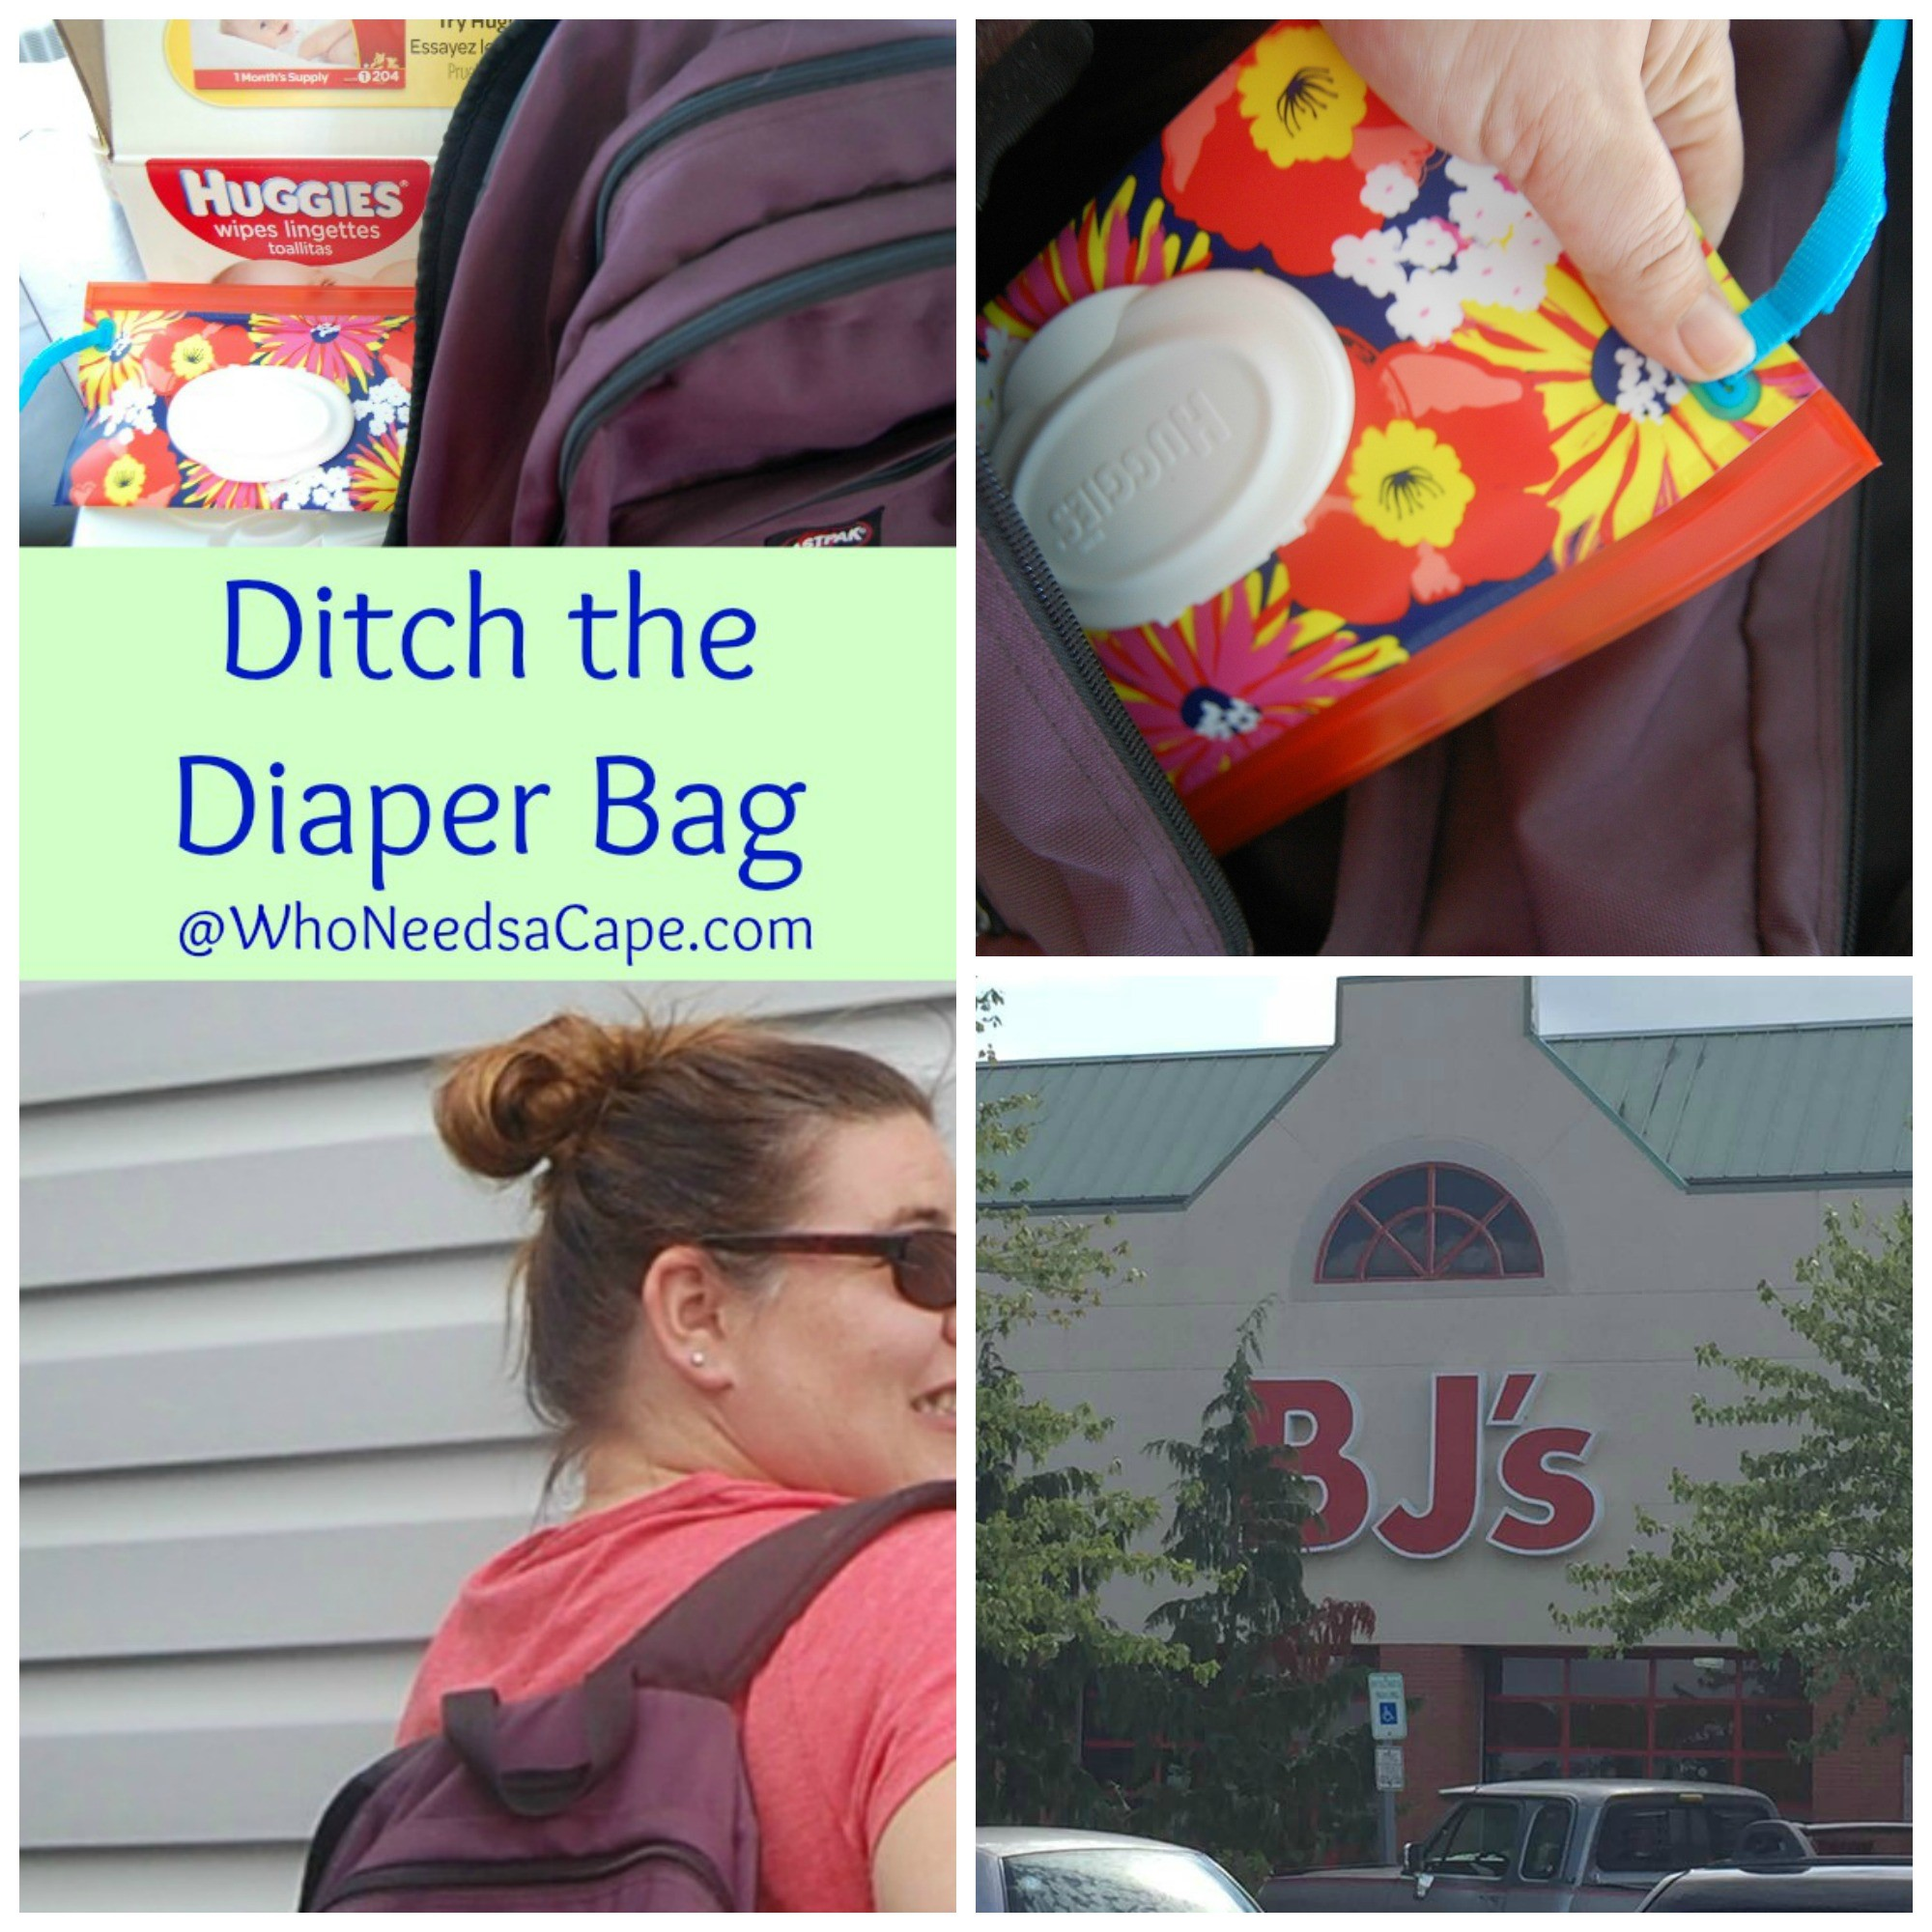 ditch-the-diaper-bag-1